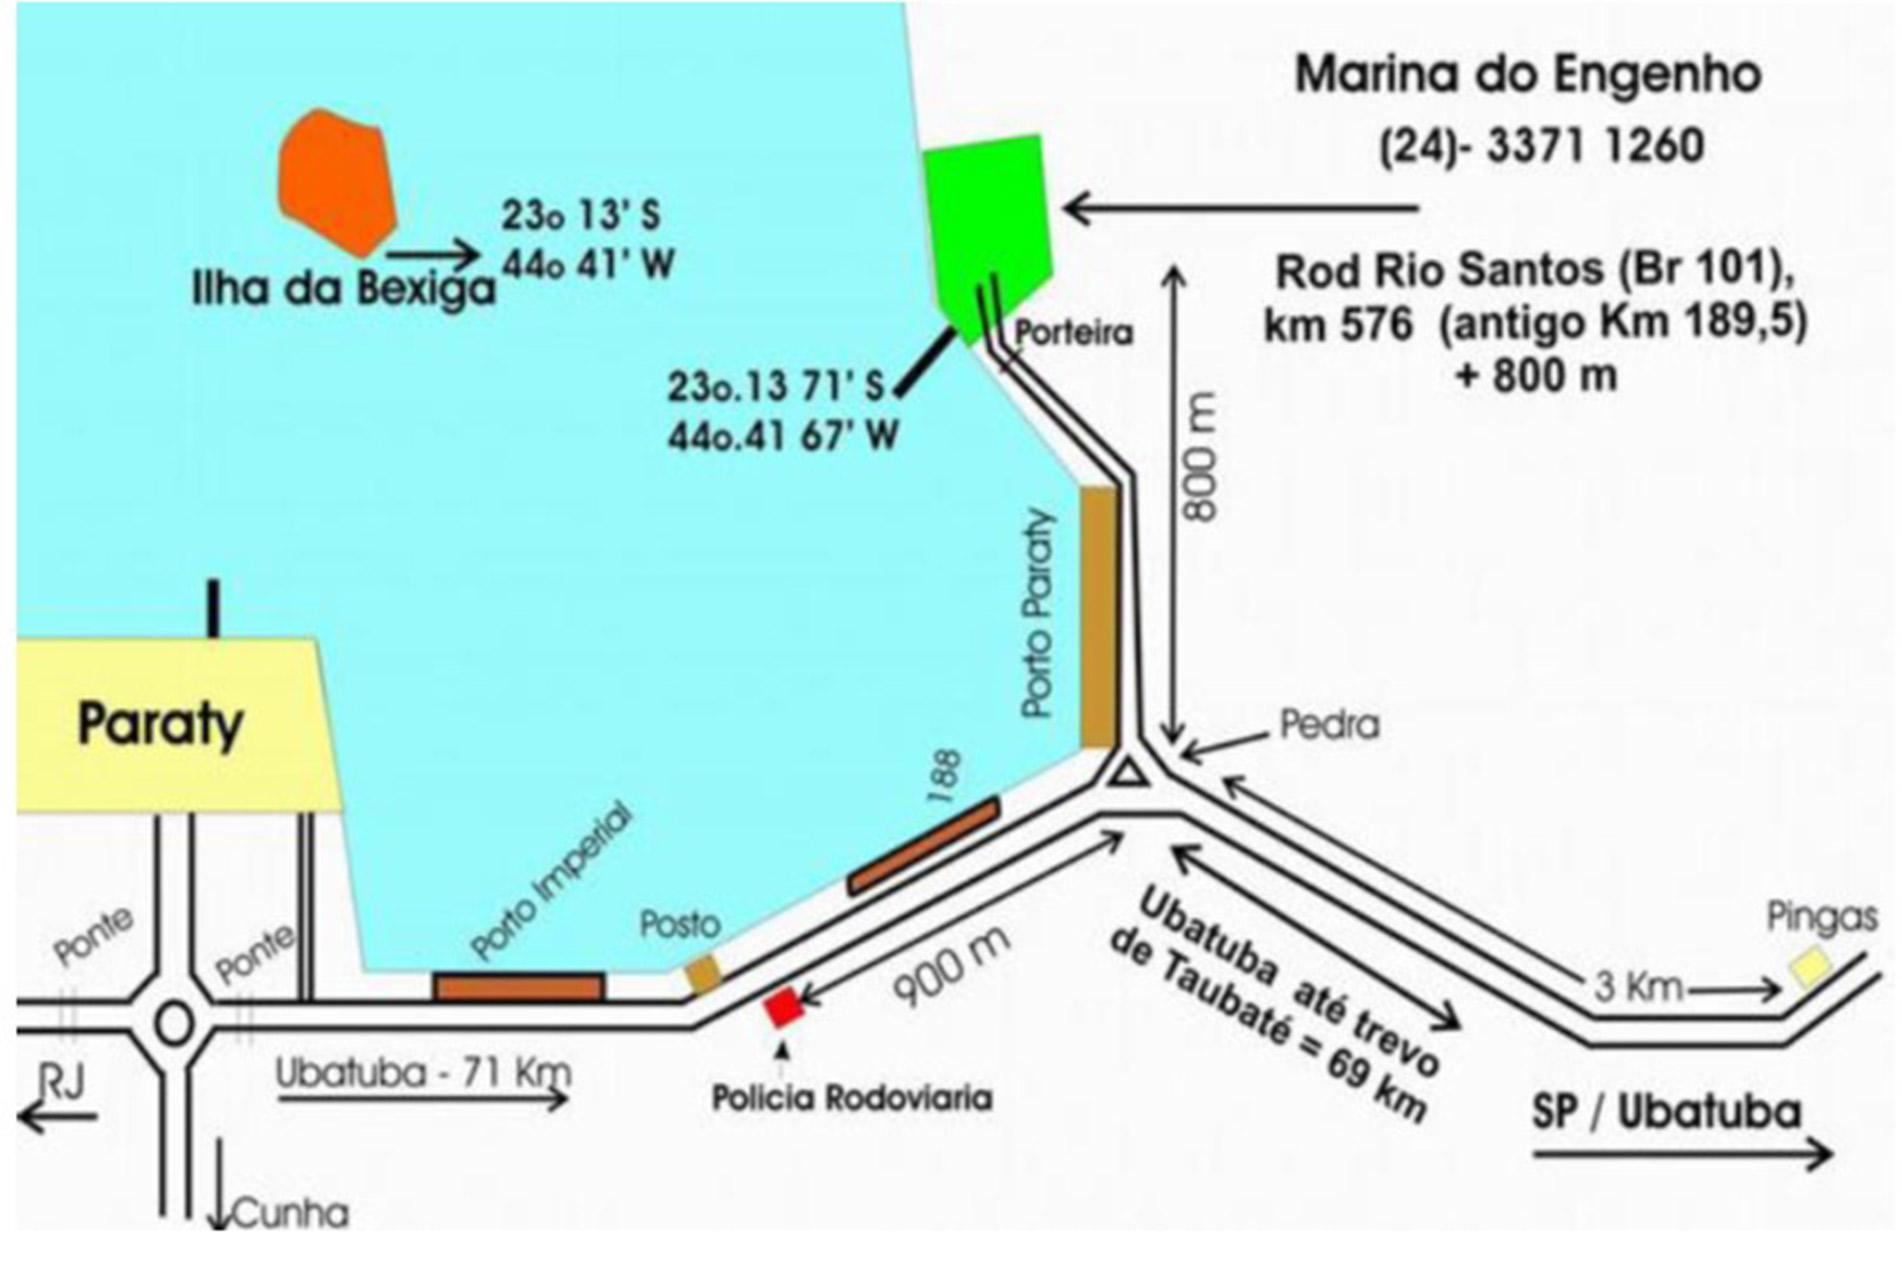 Paraty base map